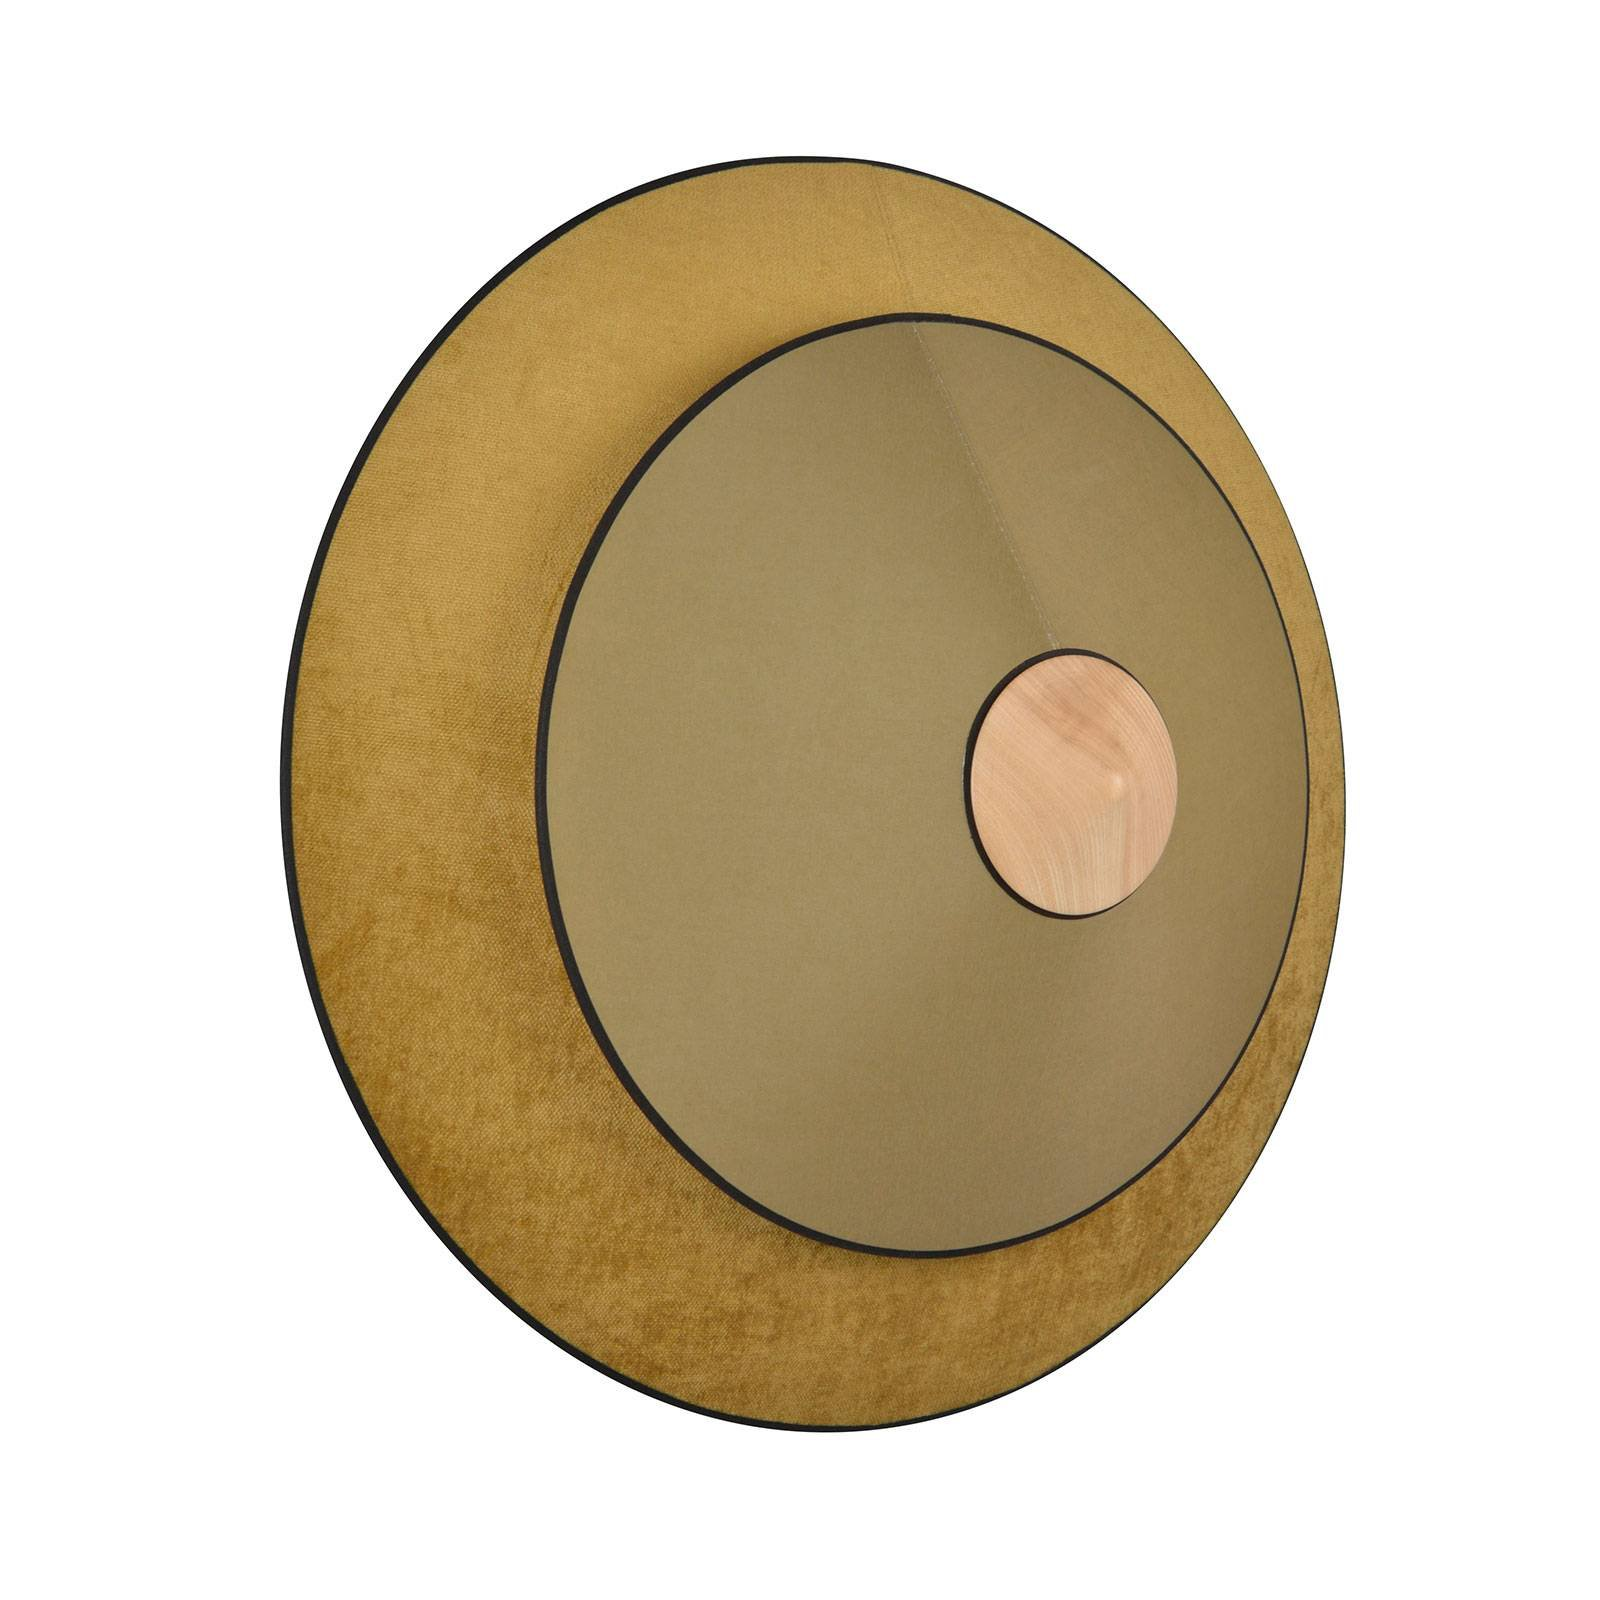 Forestier Cymbal S LED-vegglampe, bronse